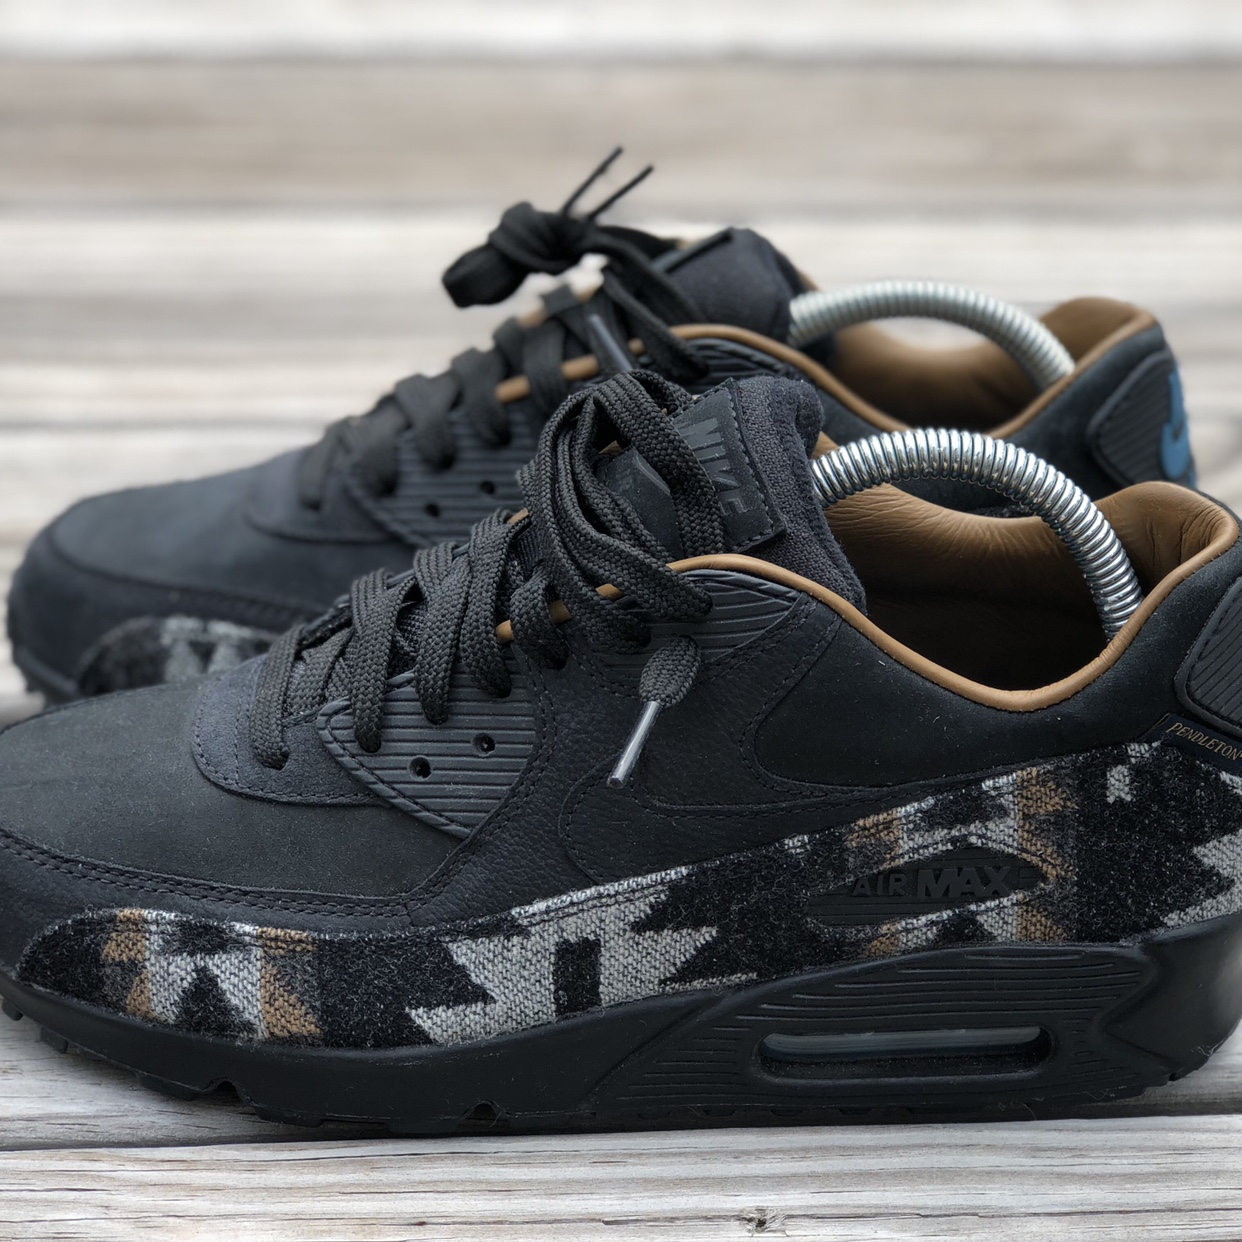 Brand New Nike Air Max 90 Pendleton QS. These shoes